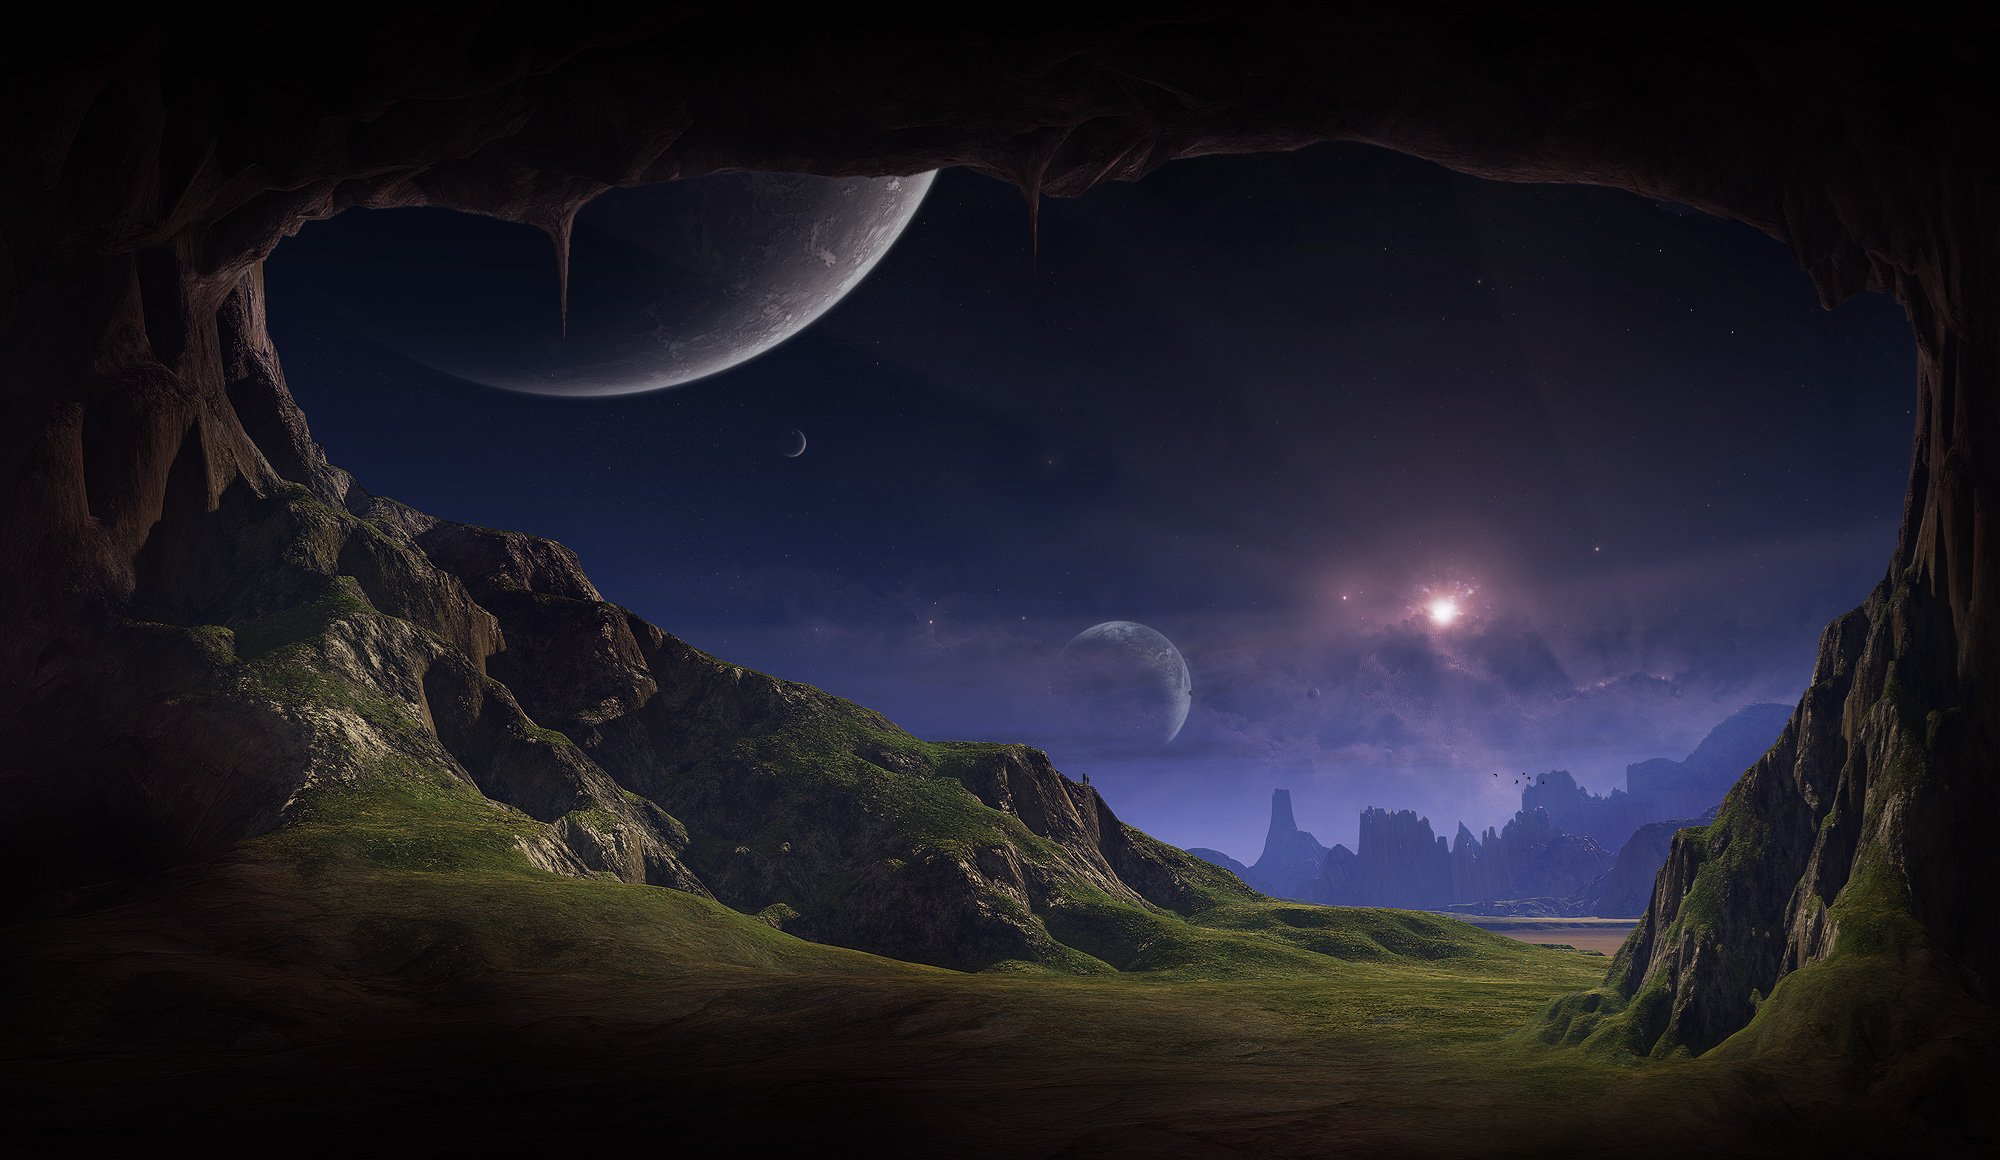 alien planet landscapes wallpaper wallpapersafari